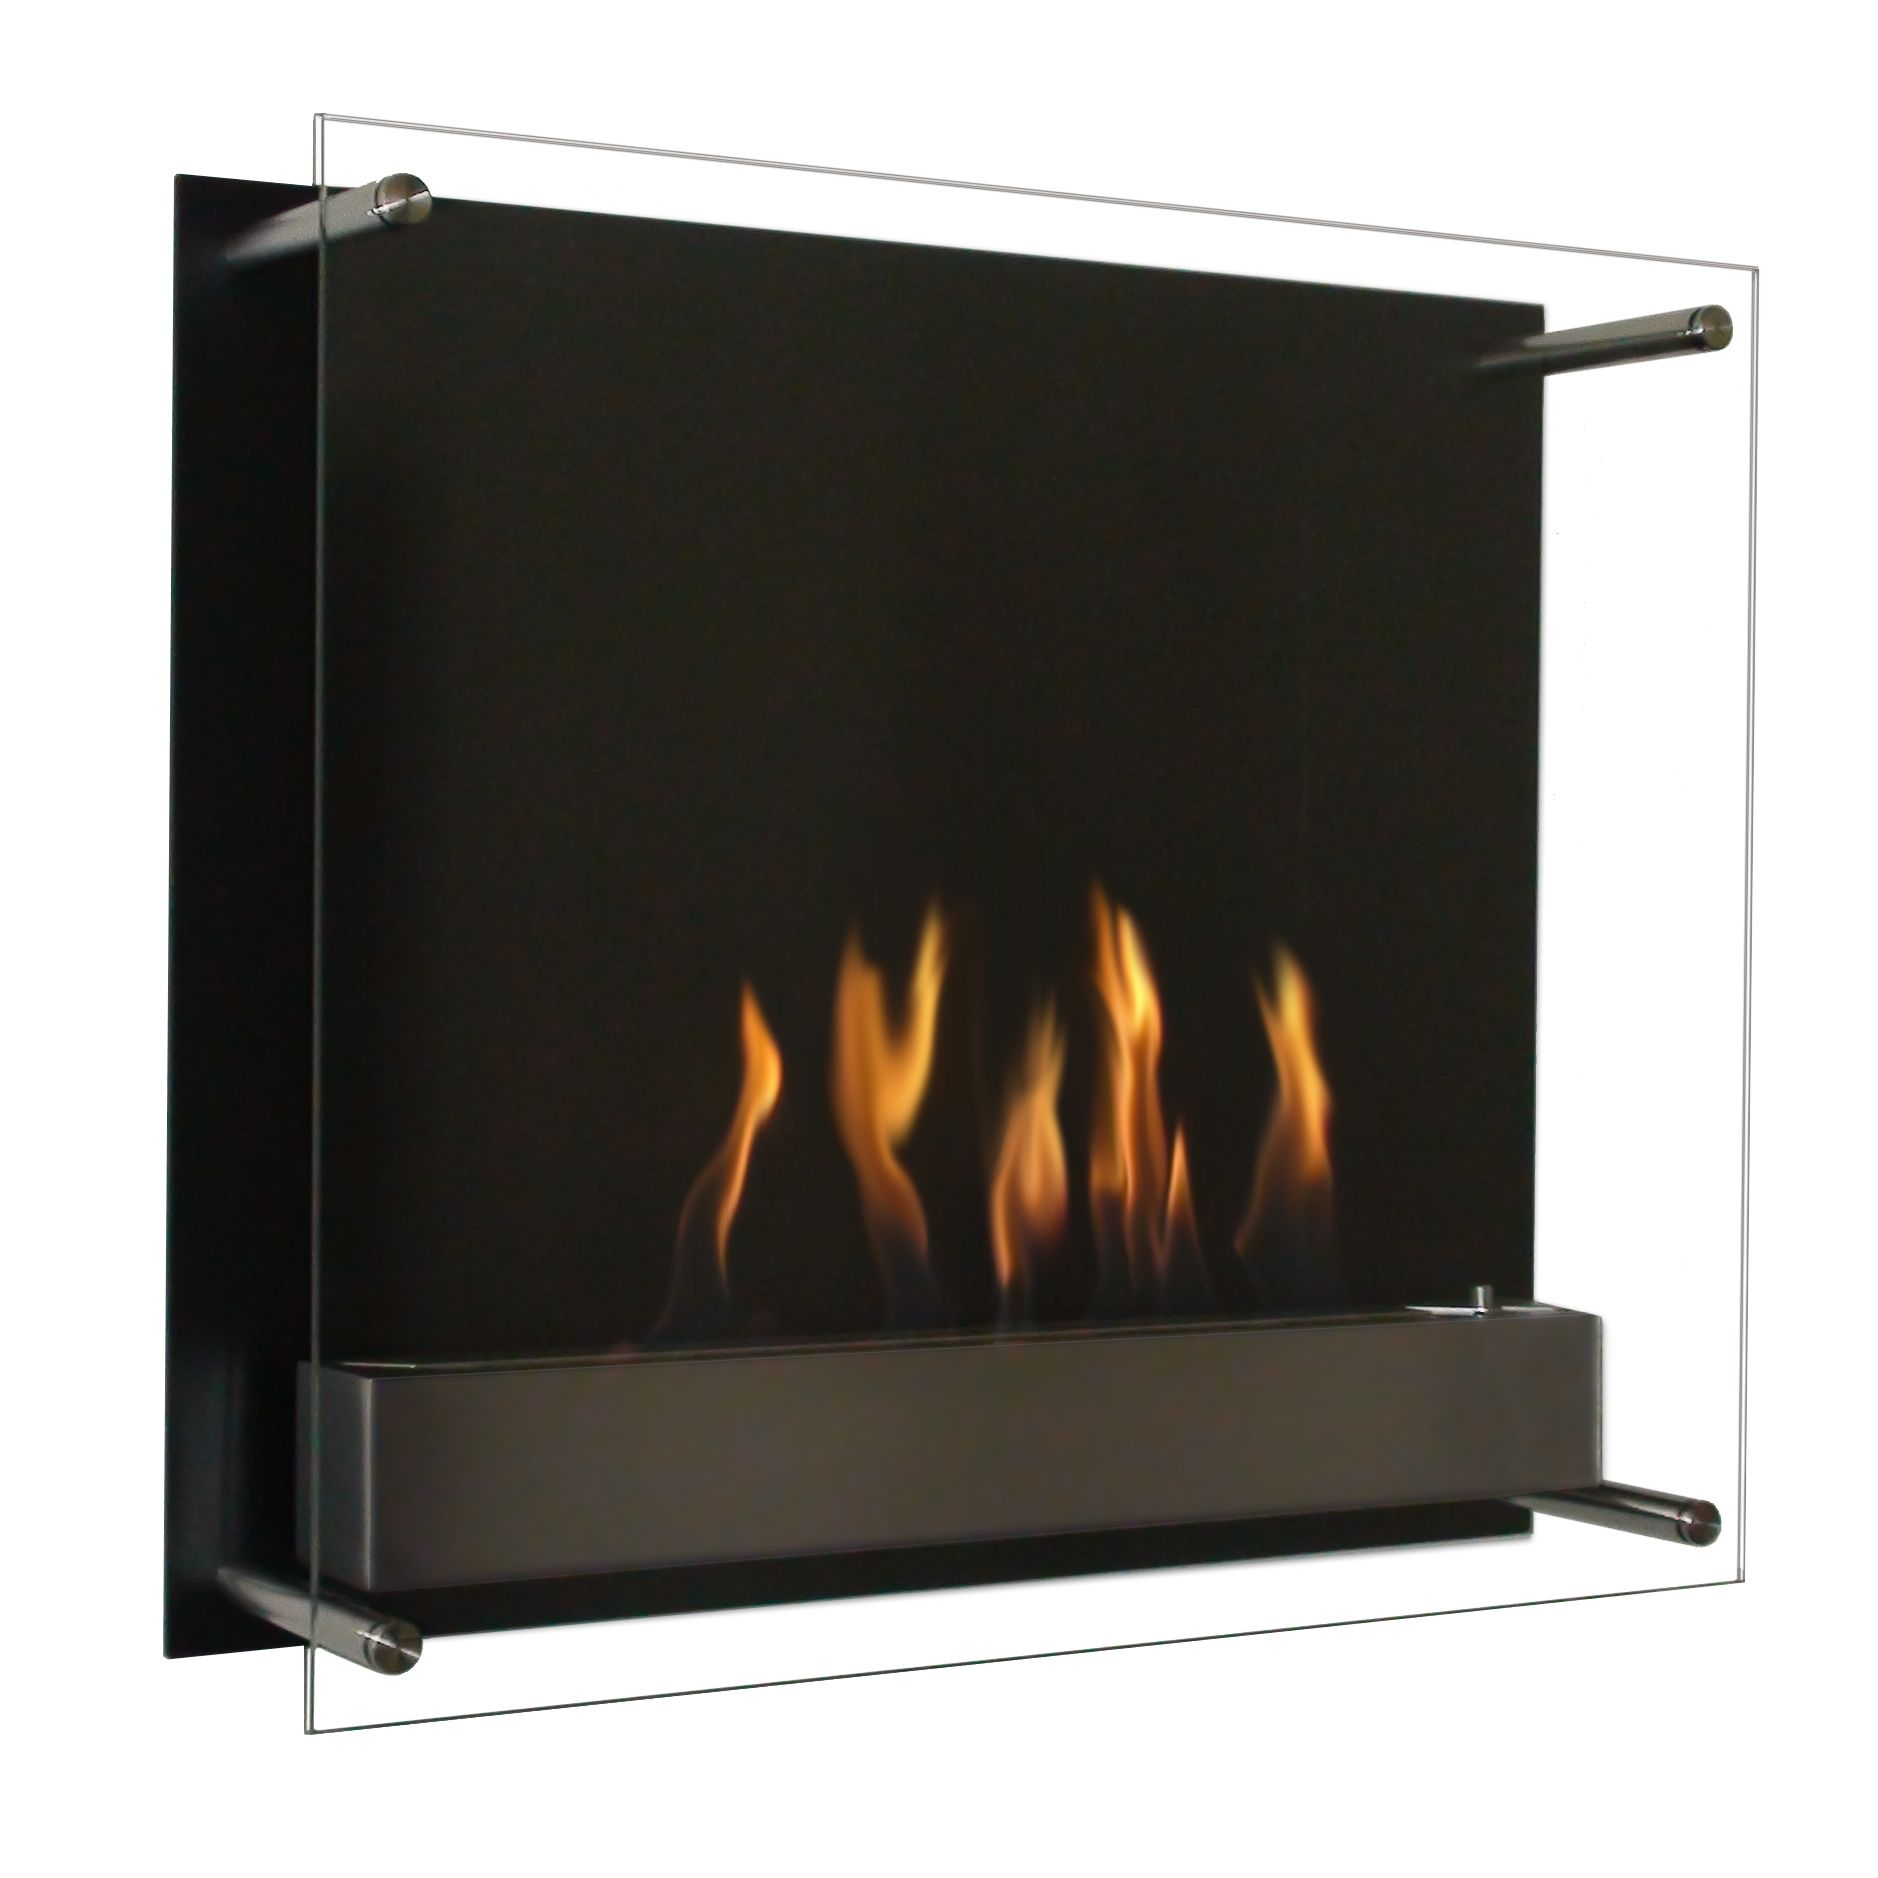 Decoflame Ellipse Flueless Fire: John Lewis, UK: Save £££ Today At John Lewis Online Store